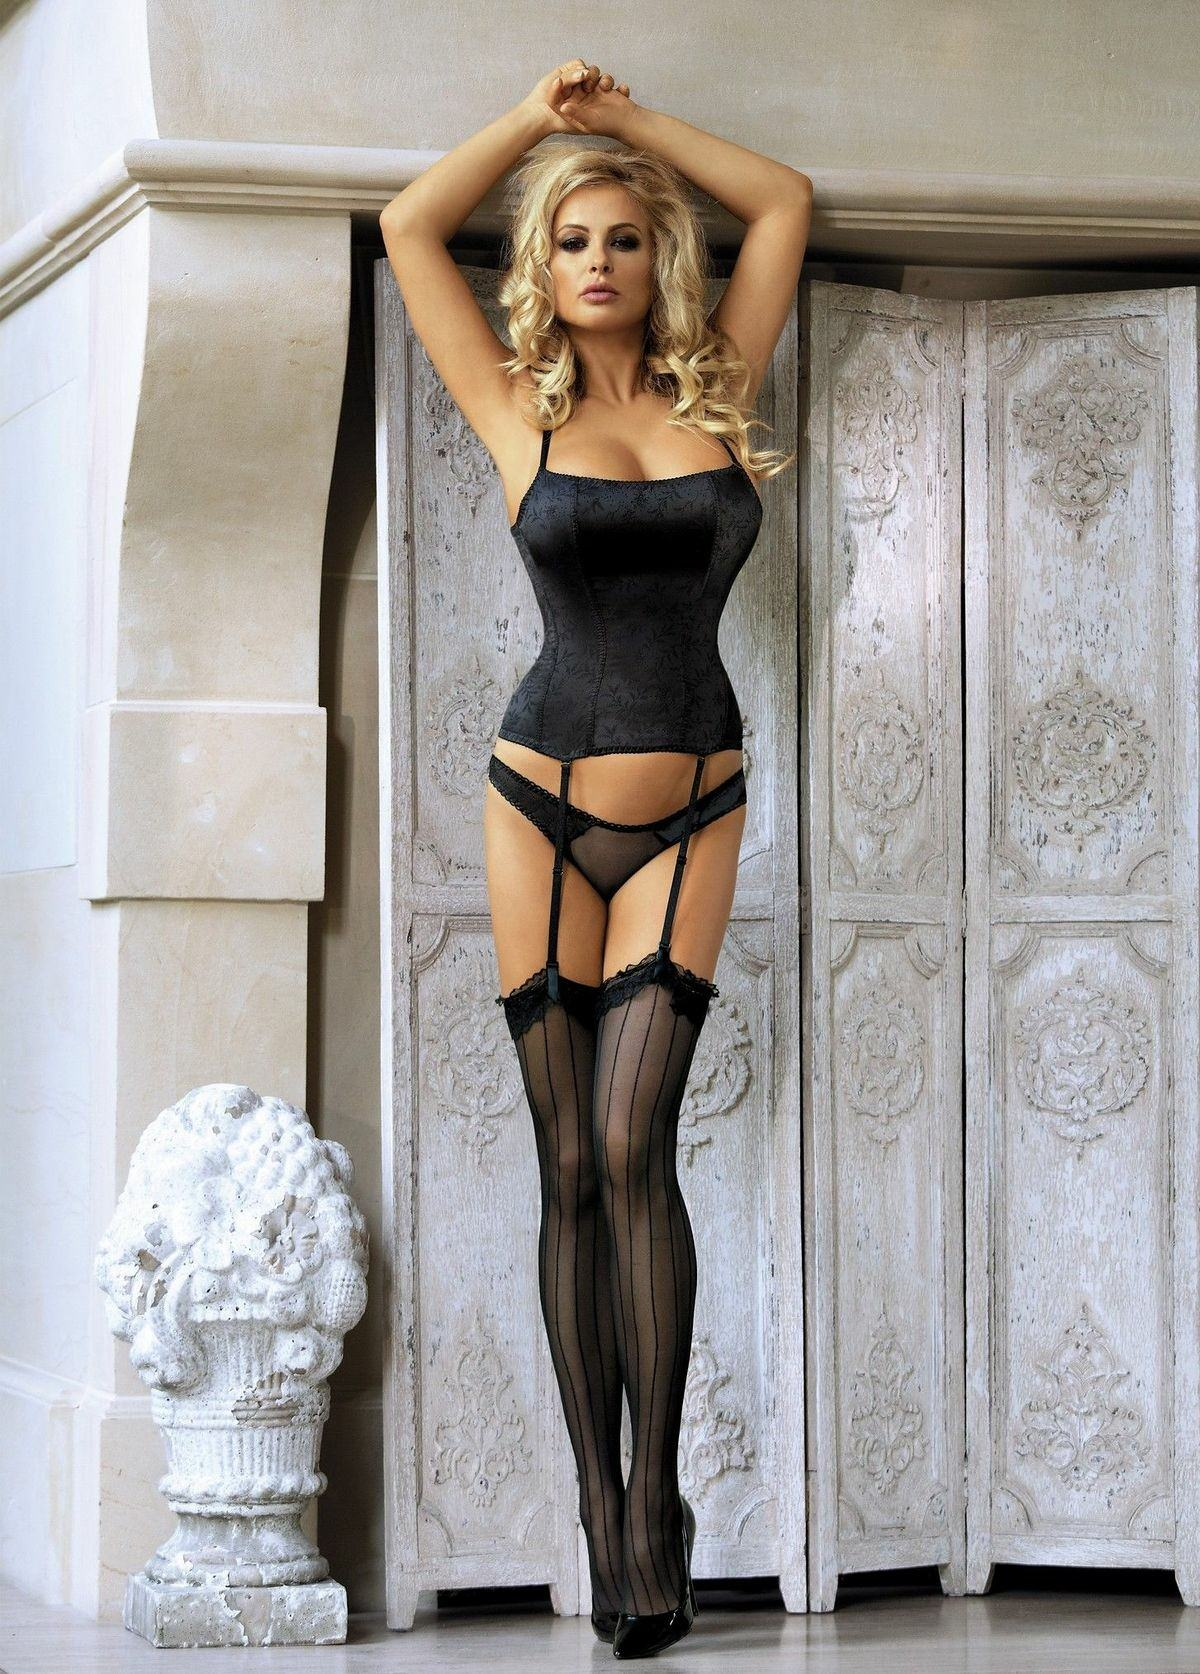 Pin on sexy lingerie woman